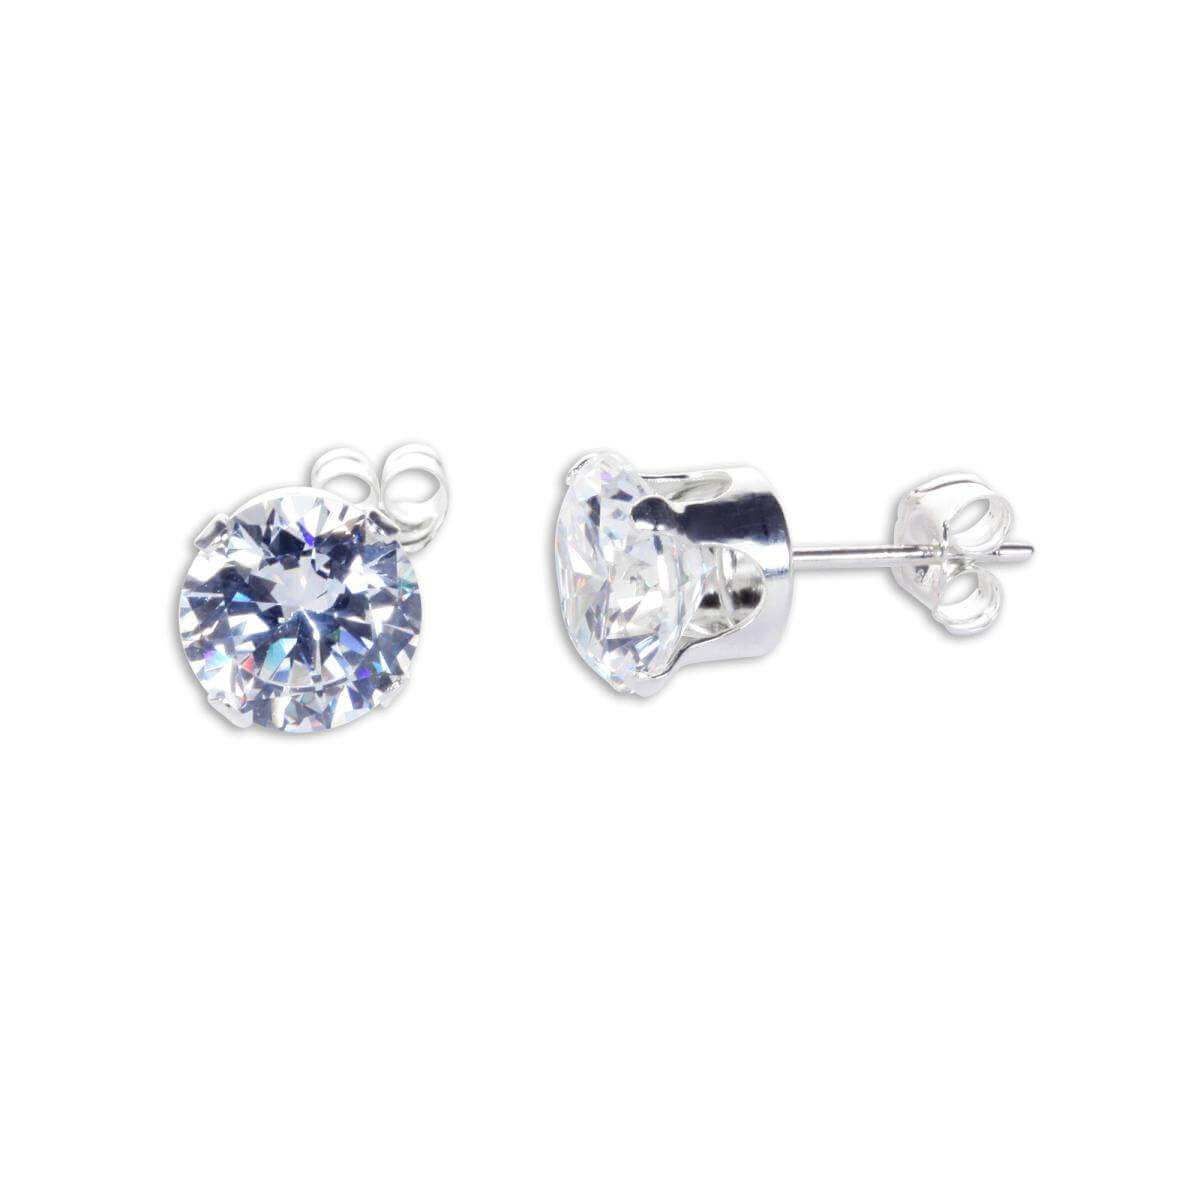 Sterling Silver Clear CZ 7mm Round Stud Earrings